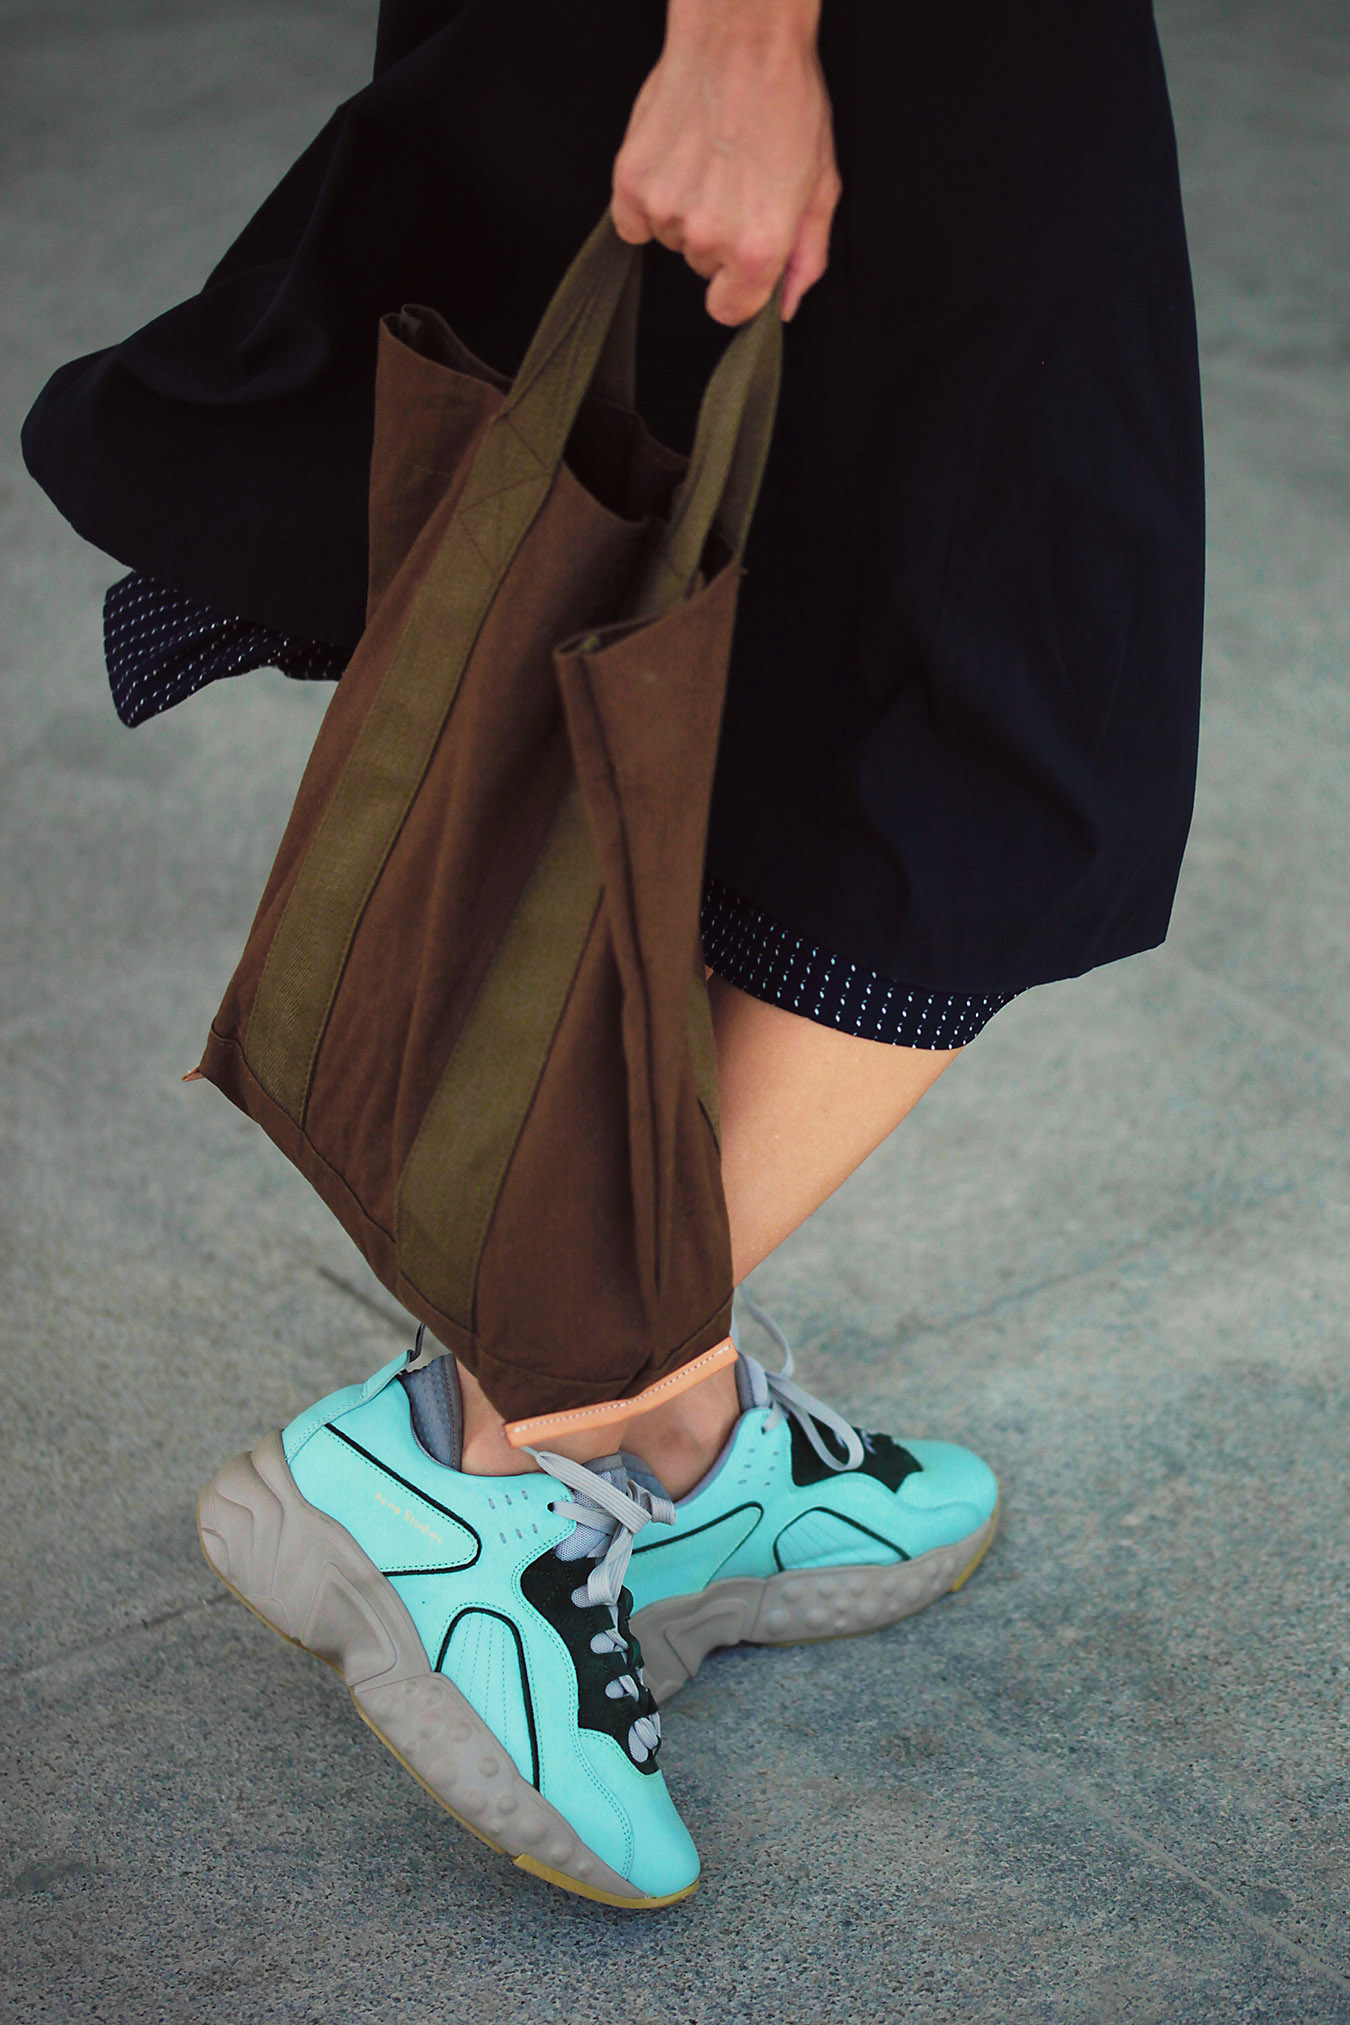 acne chunky sneakers and weekender tote